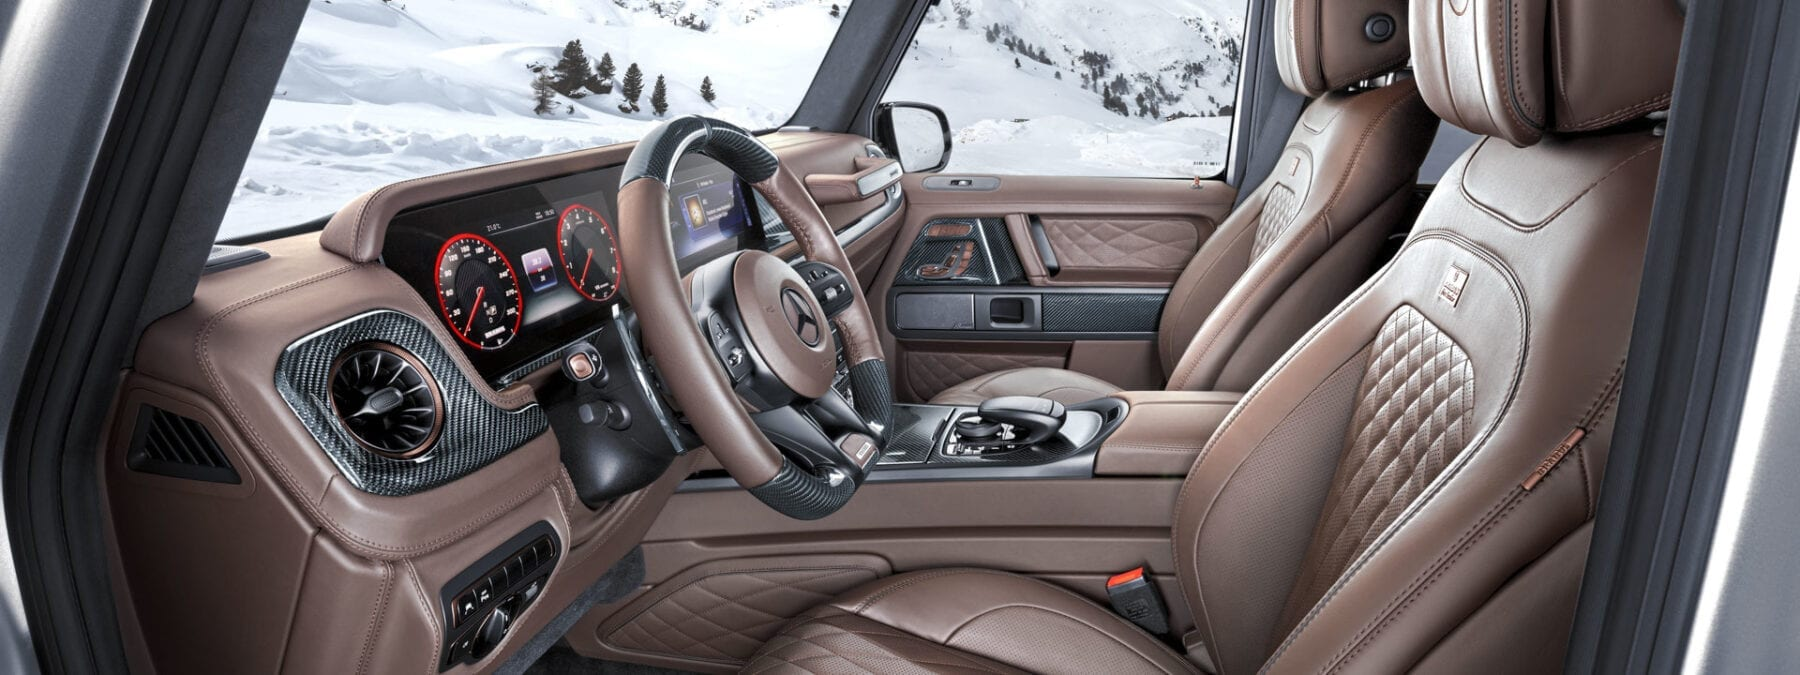 Brabus 800 Adventure XLP interieur